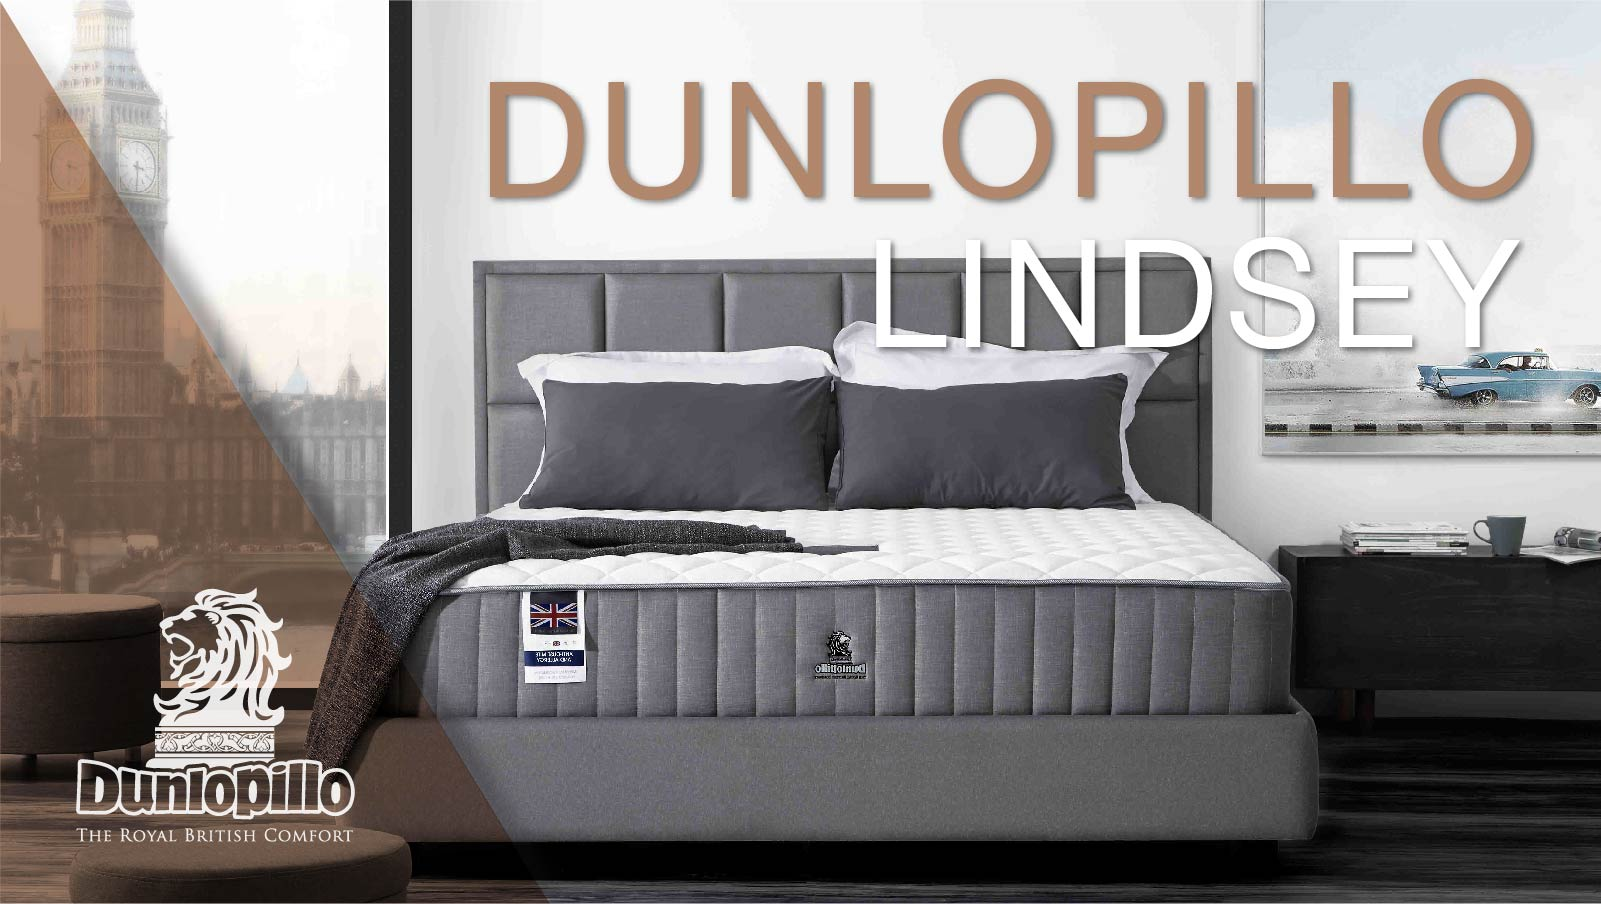 Dunlopillo Mattress - Lindsey